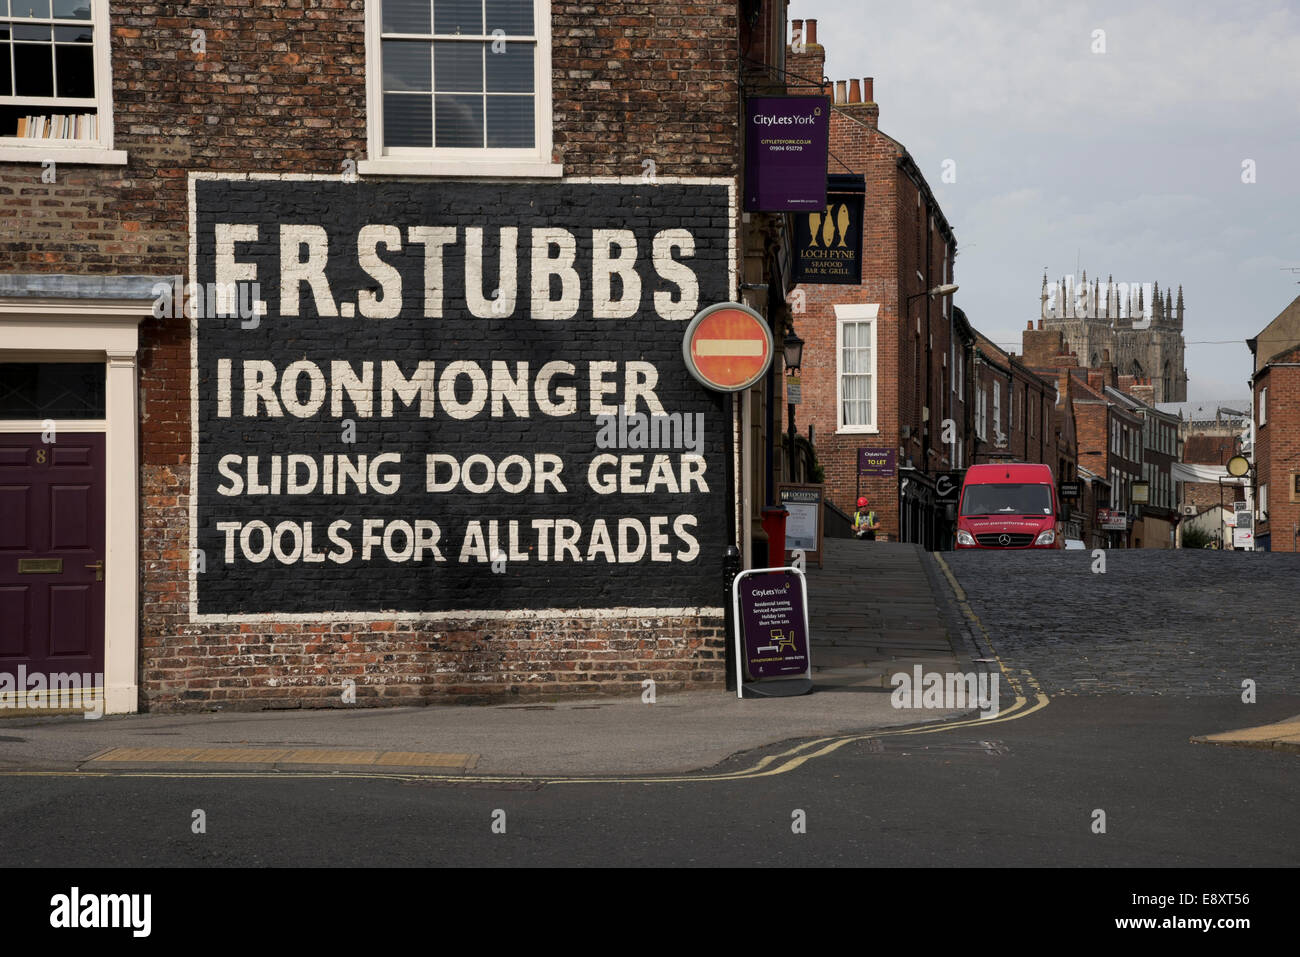 Large clear hand-painted ghost sign, an old advertisement for an ironmonger's, on the side of a brick building - Stock Image